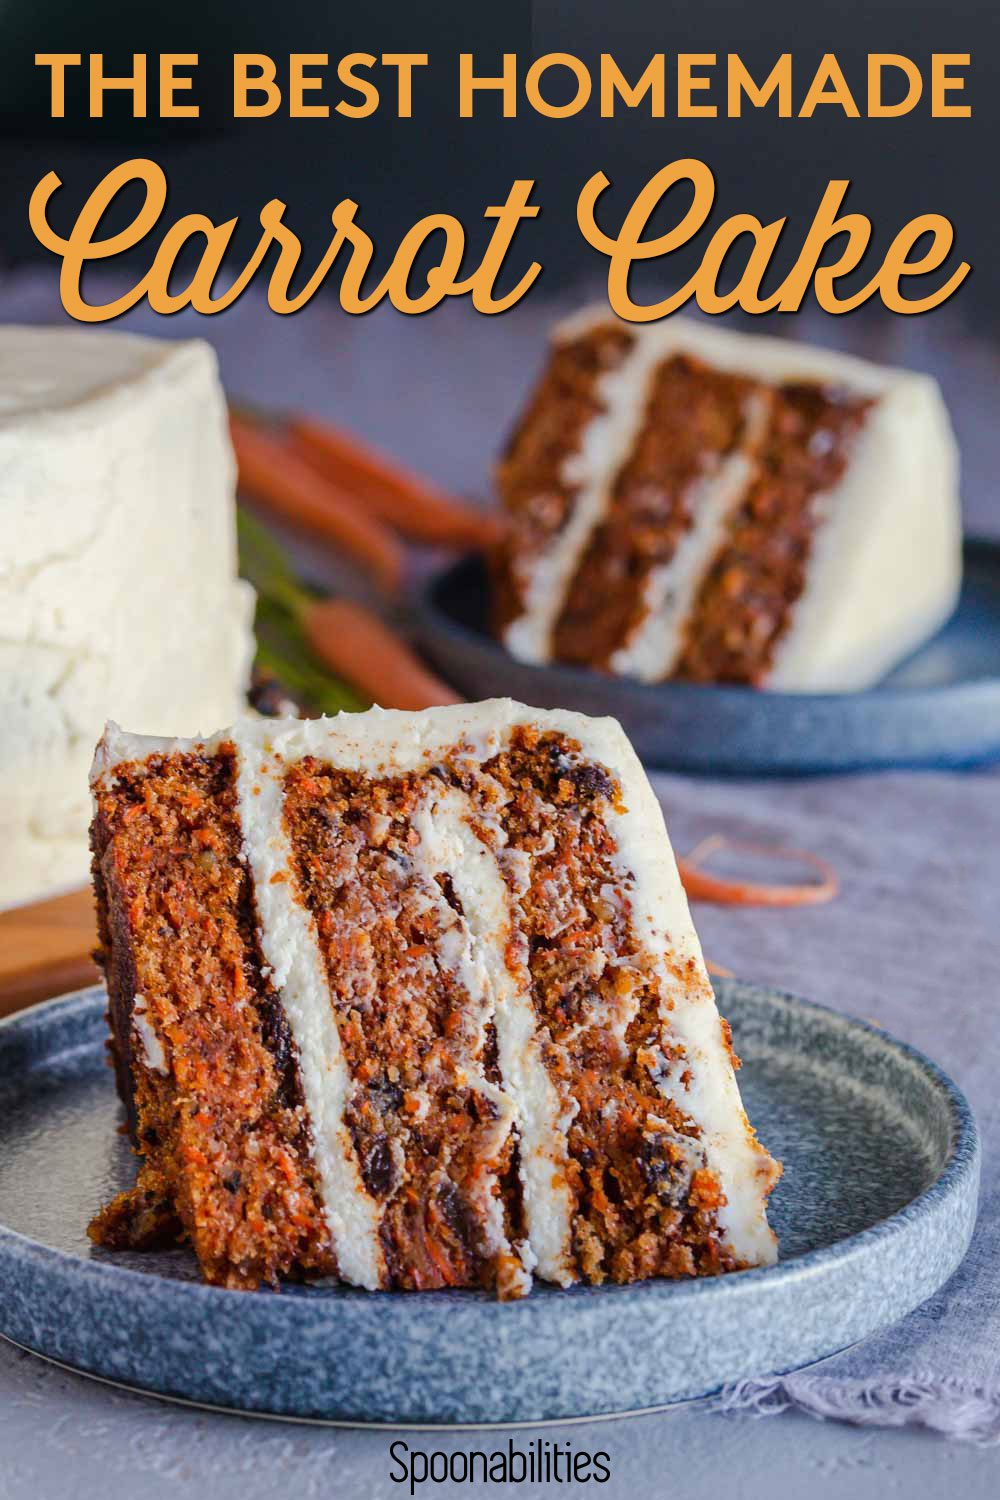 A slice of the BEST carrot cake on a blue round plate. in the background, the cake in the stand, and another serving. Recipe at Spoonabilities.com